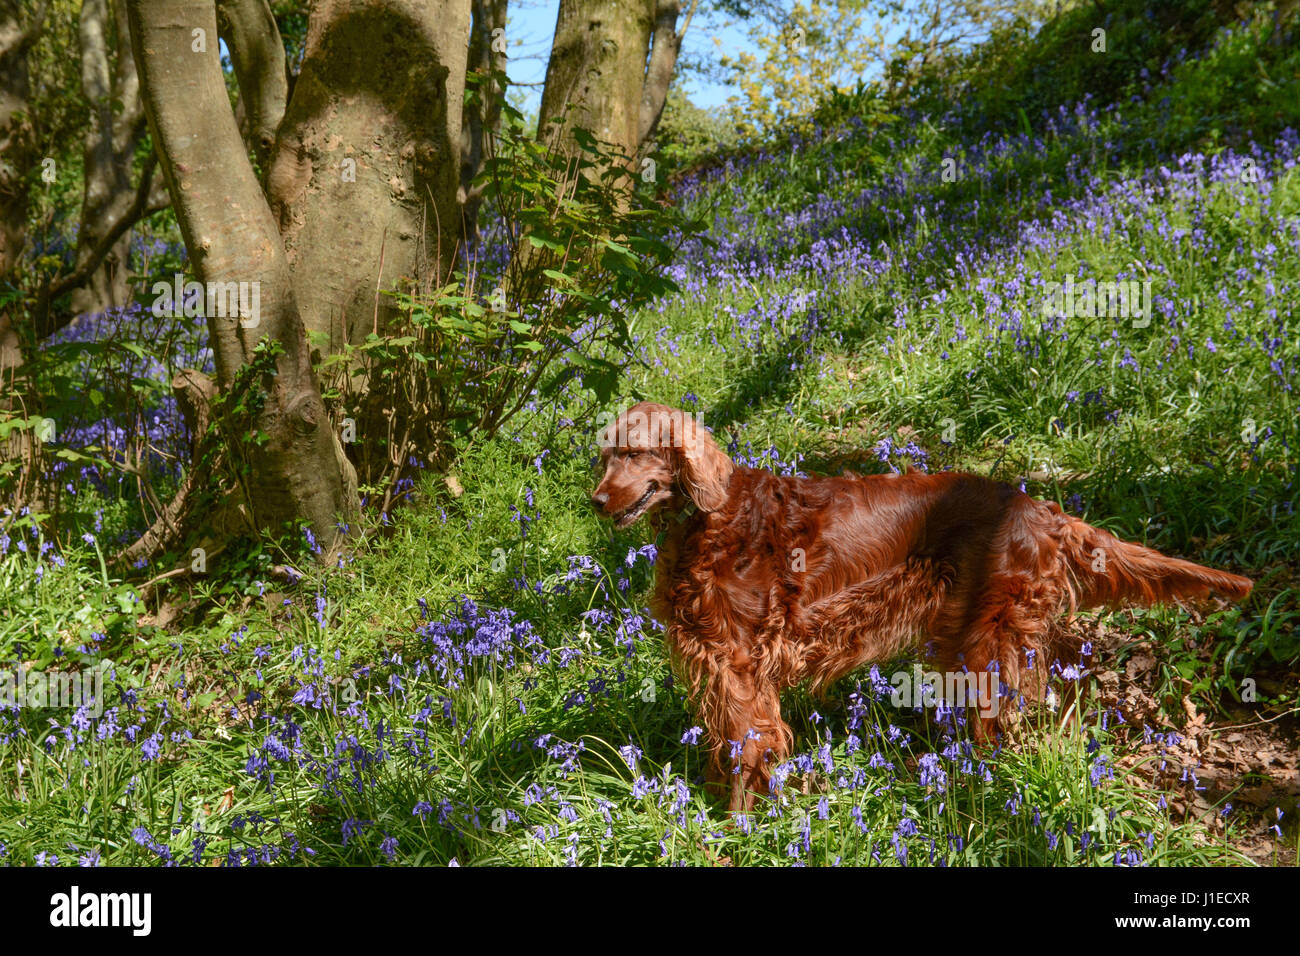 Newlyn, Cornwall, UK. 21st April 2017. UK Weather. A  sunny lunchtime walk in the bluebell woods for these Irish - Stock Image